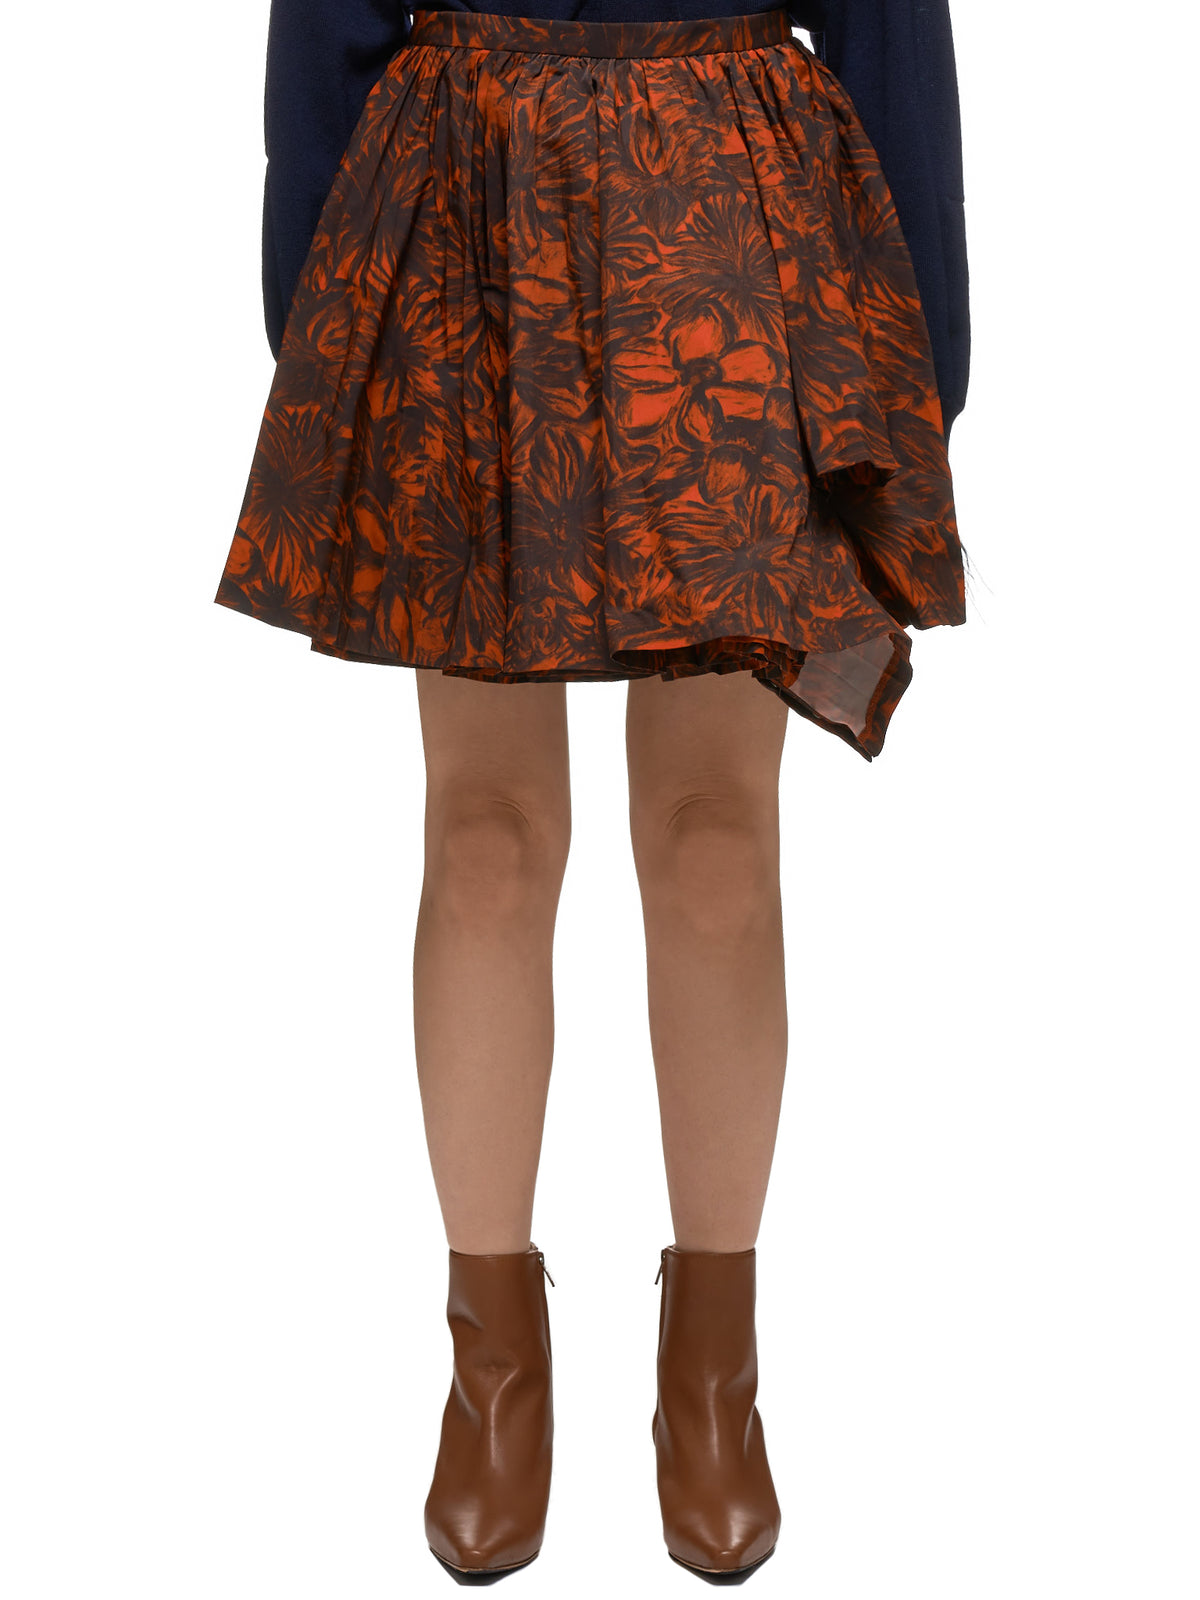 Toga Archives Skirt - Hlorenzo Front